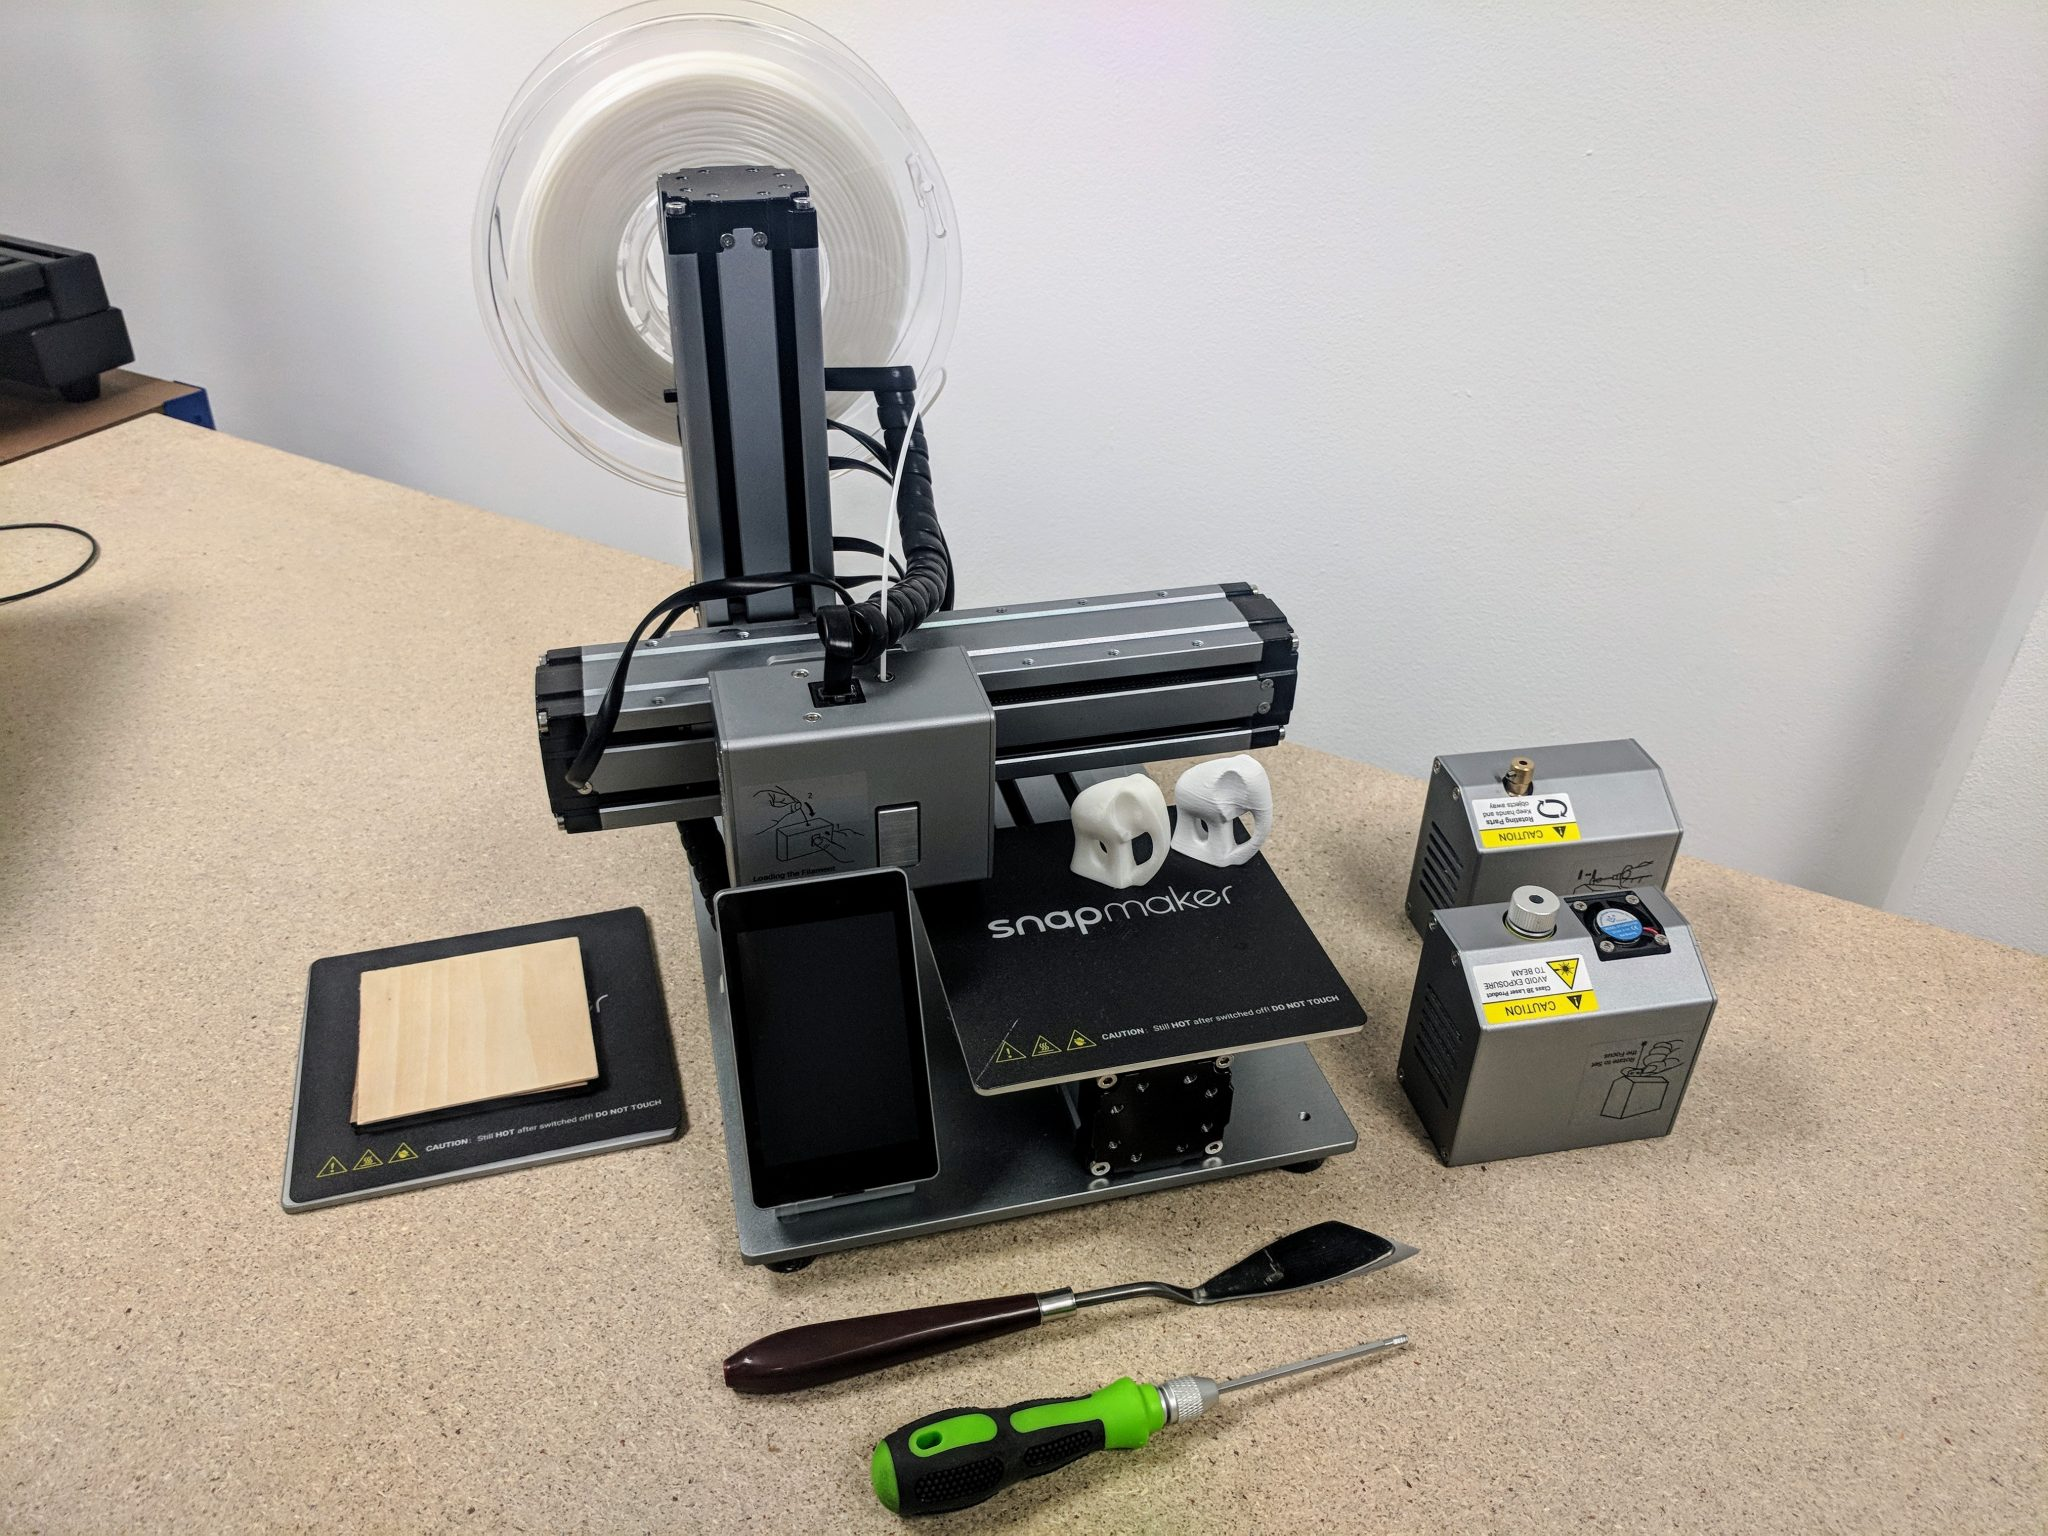 Zaawansowane Review: The Snapmaker 3-in-1 3D printer, laser engraver and CNC ON11